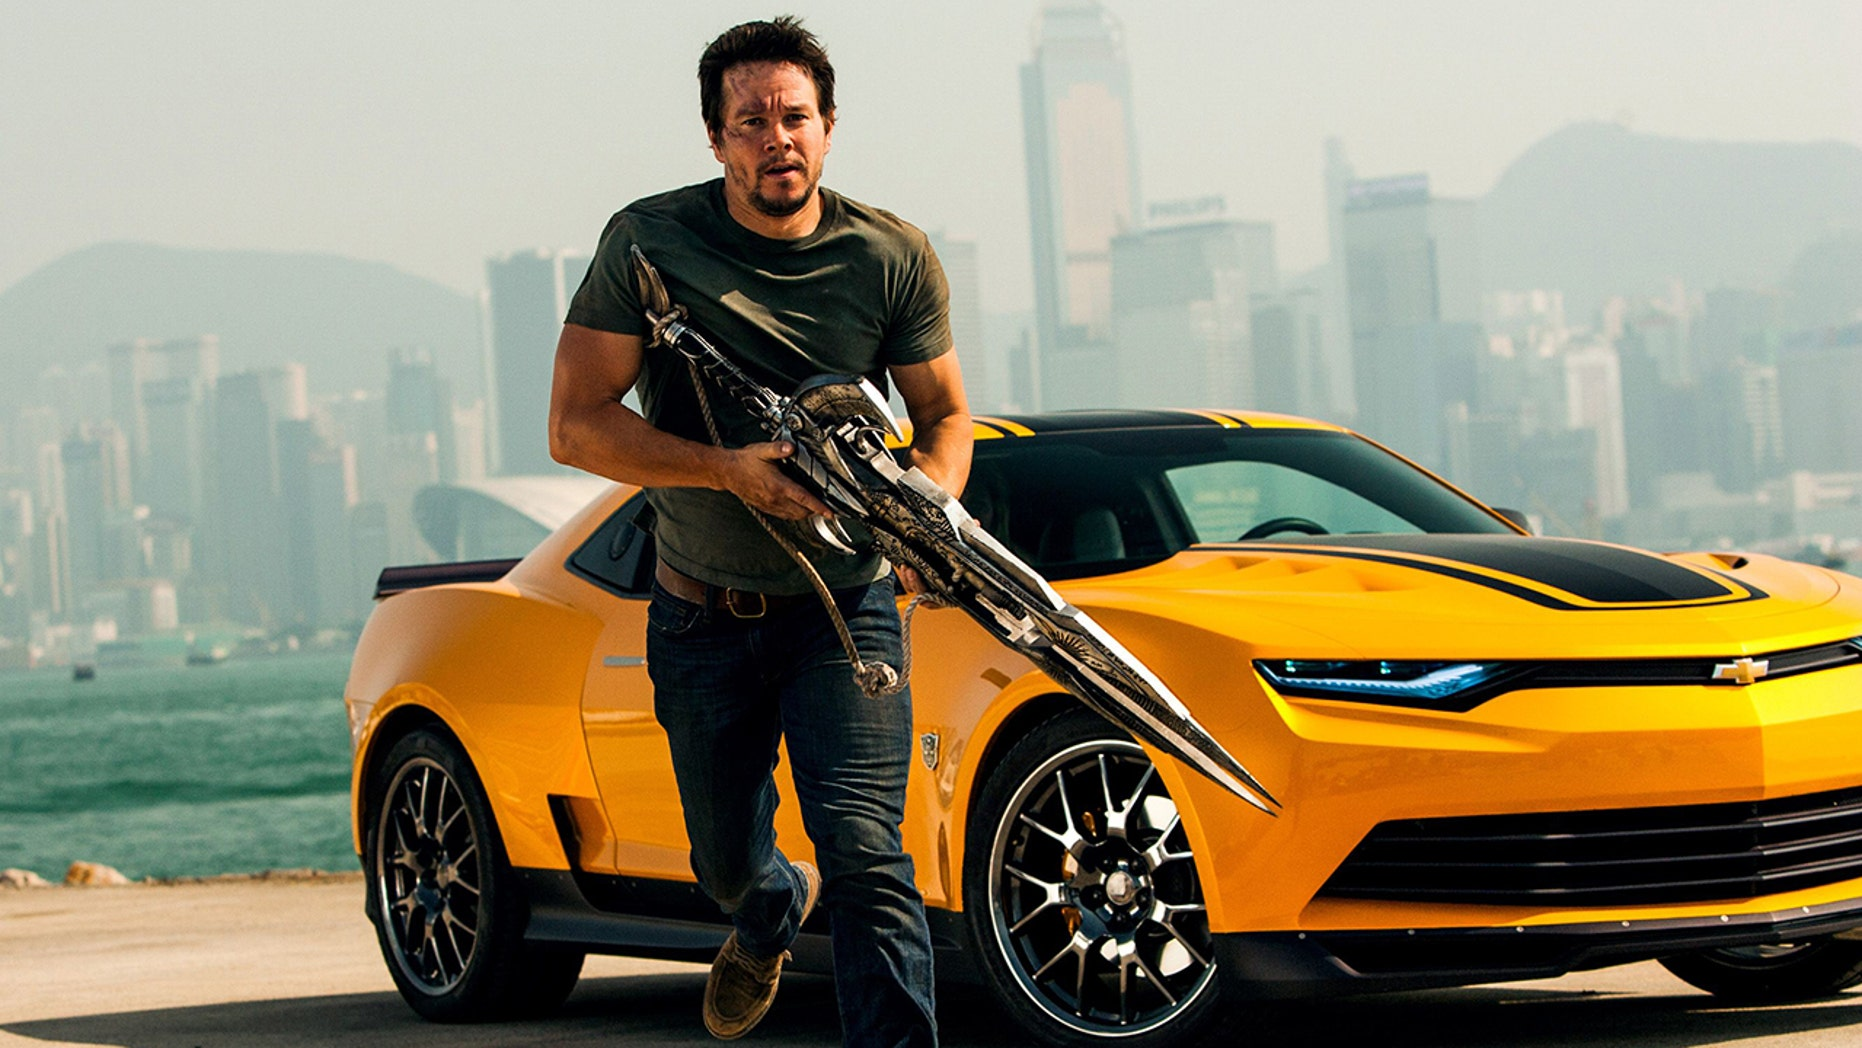 """Mark Wahlberg starred in two of the """"Transformers"""" films alongside Chevrolets that turn into robots."""